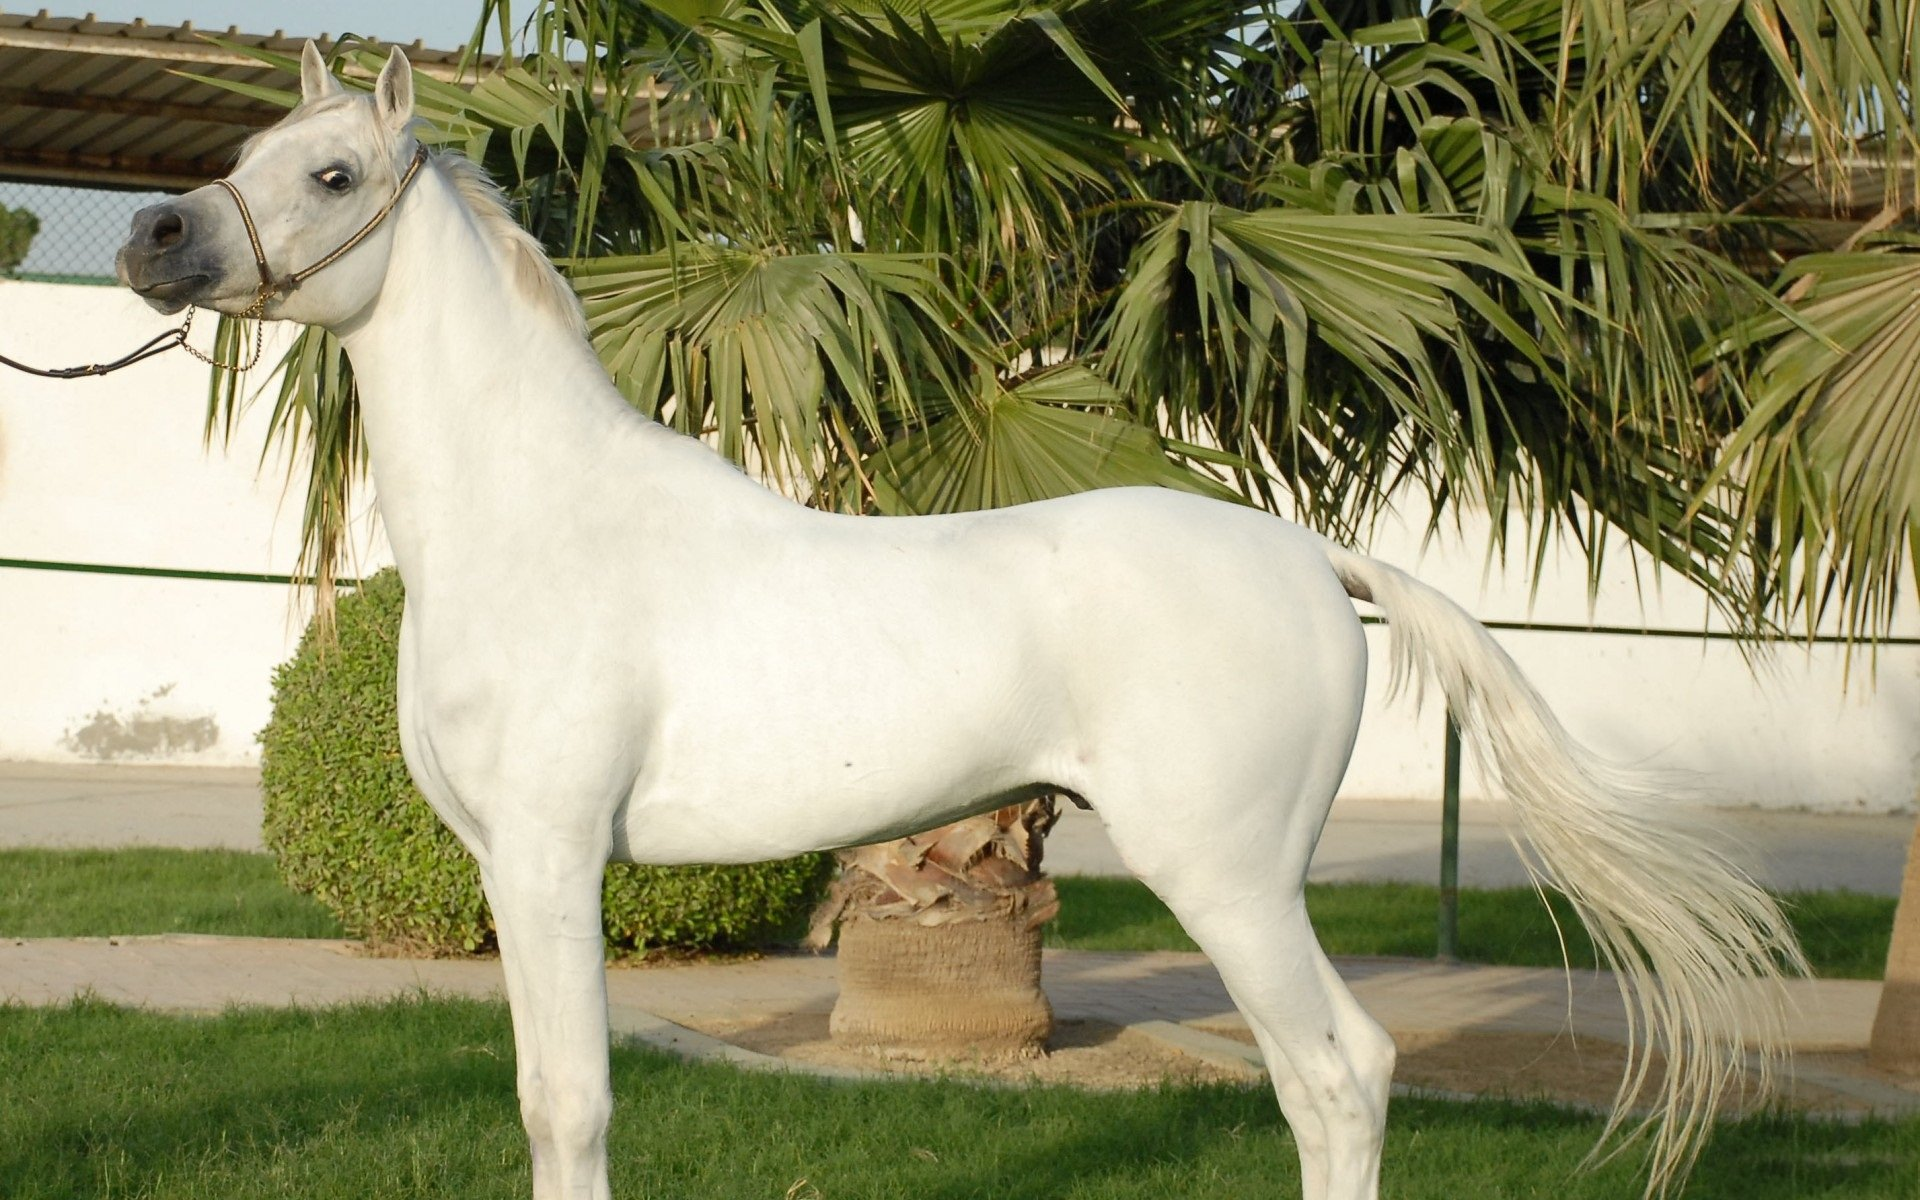 Horses For Sale Adoption in Islamabad Pakistan Classifieds